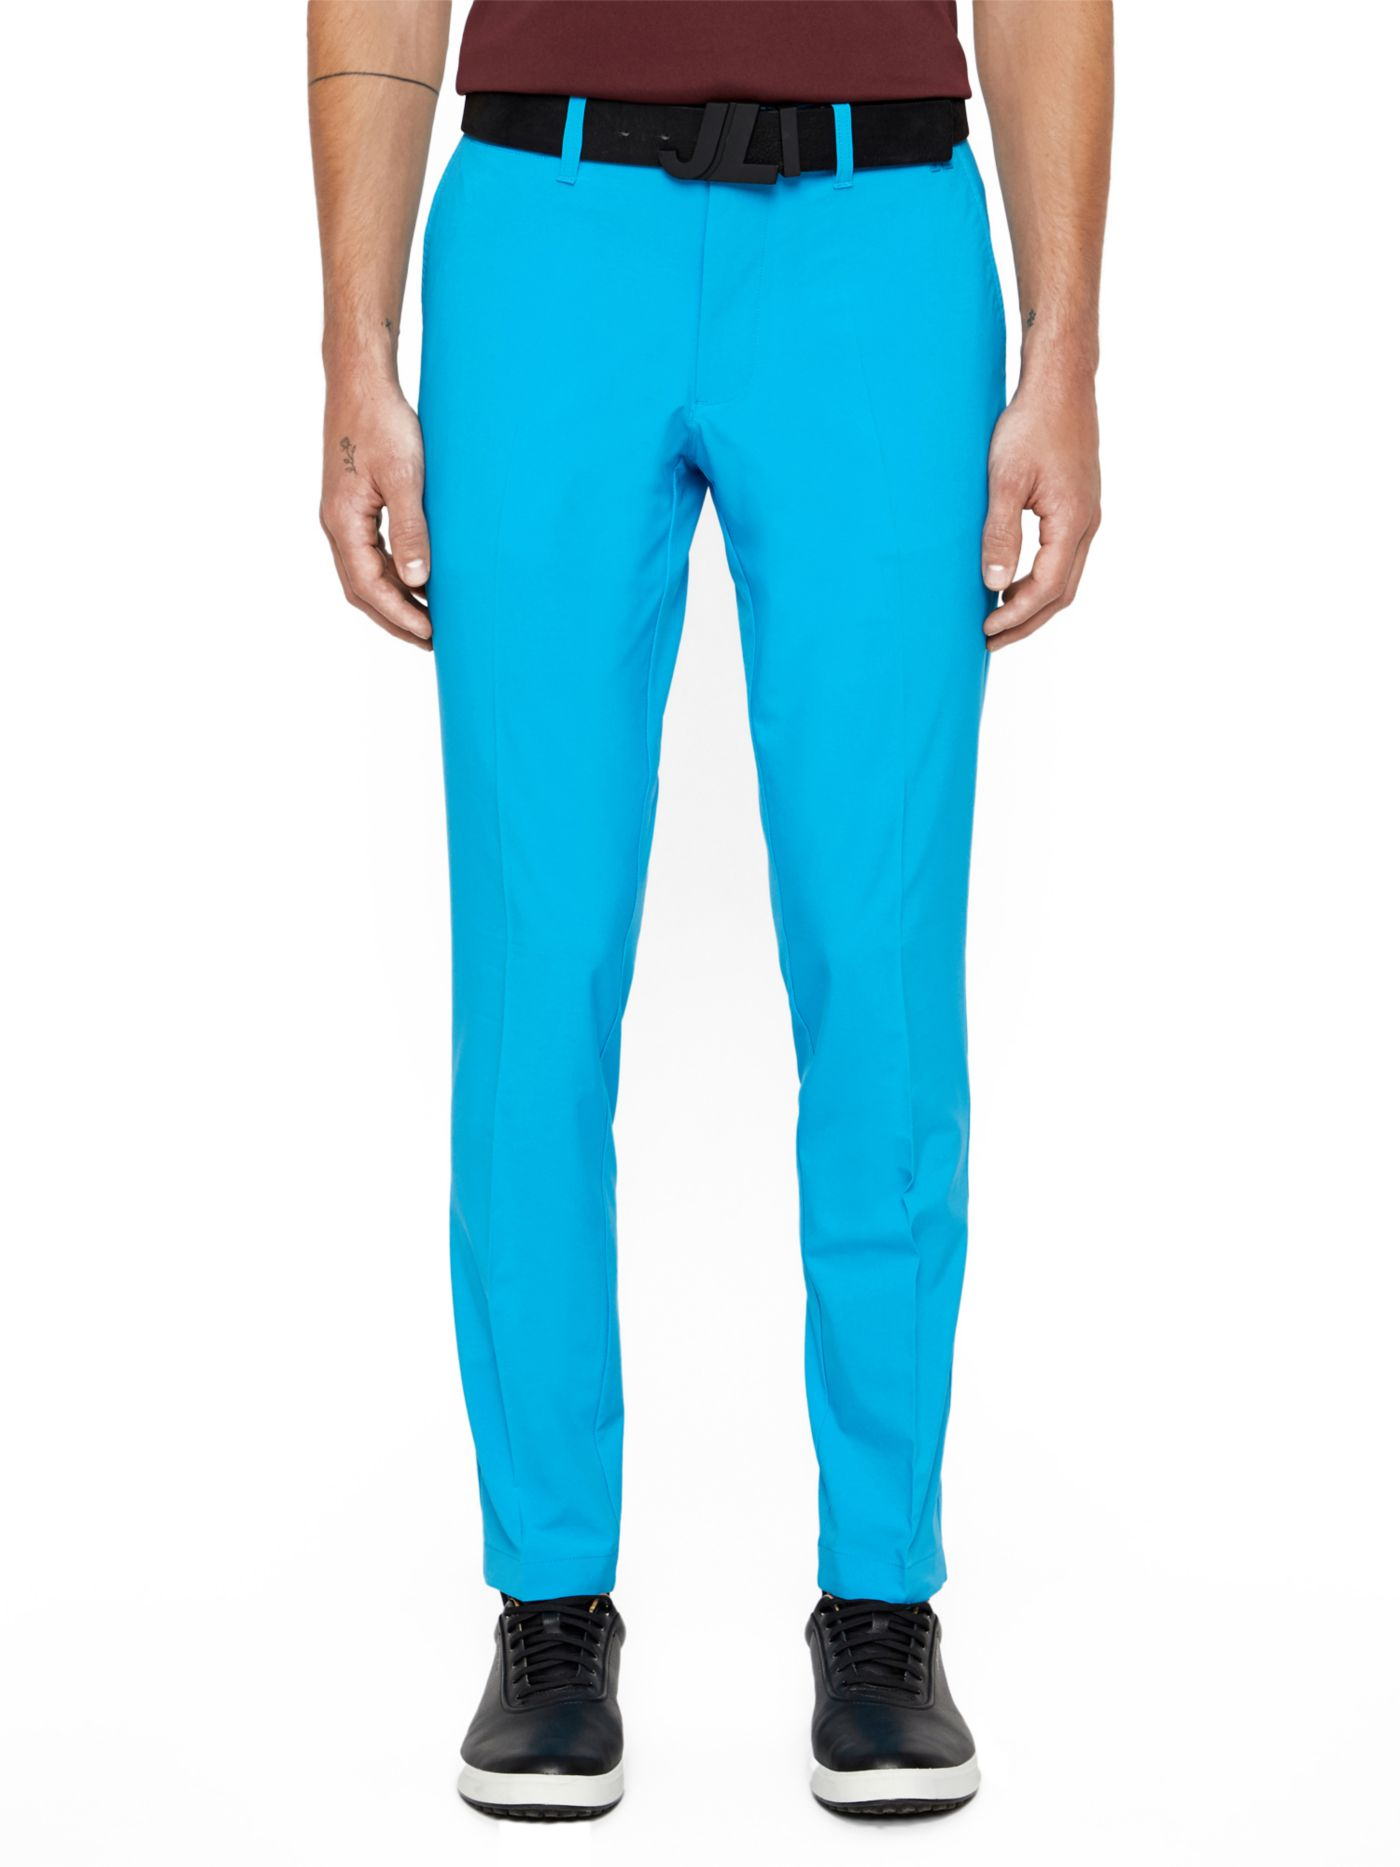 J.Lindeberg Men's Ellott Stretch Golf Pants